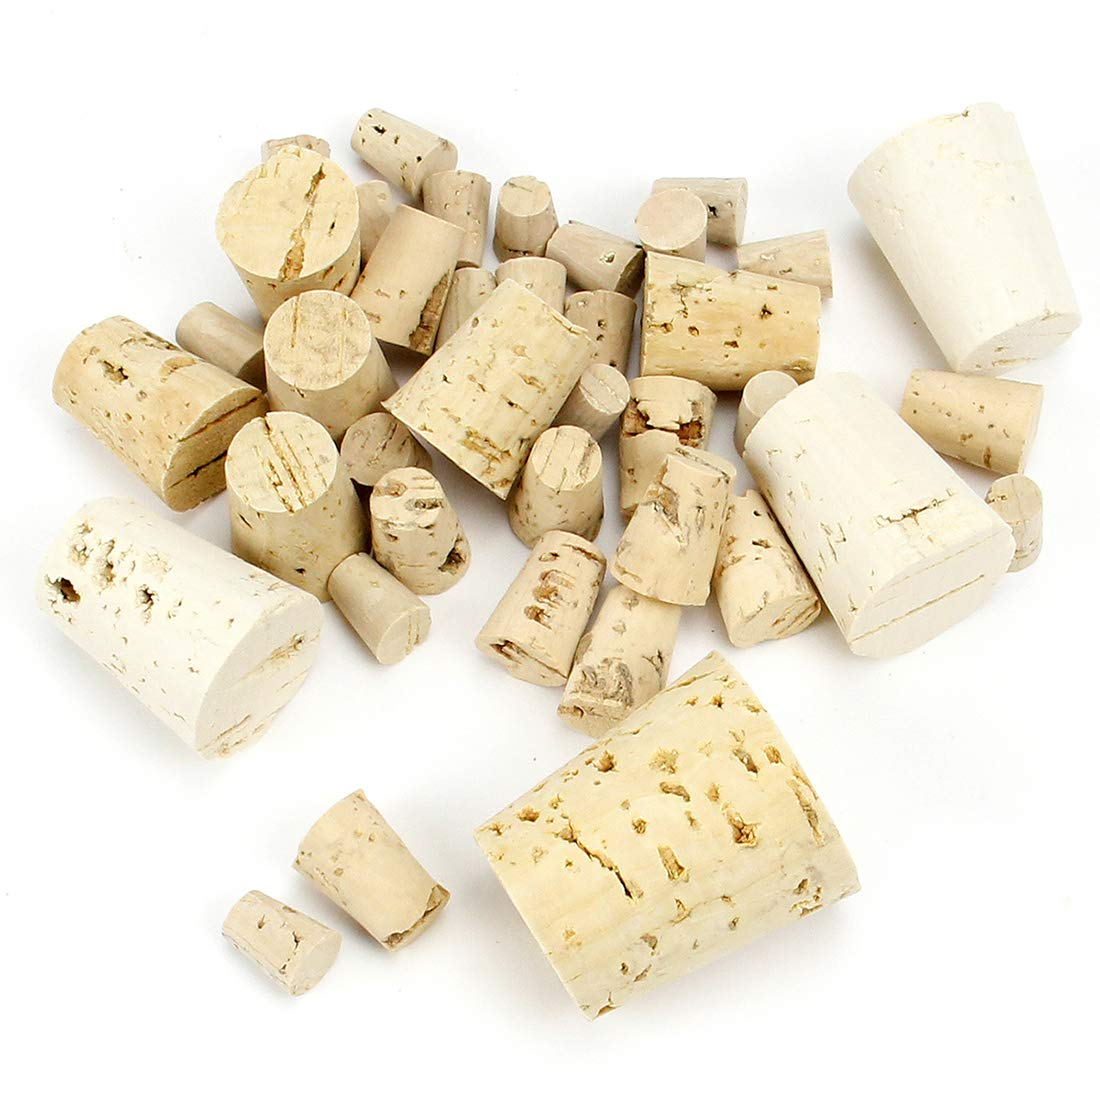 Hygloss Cork Stoppers, Assorted Sizes, 40 Pcs. by Hygloss